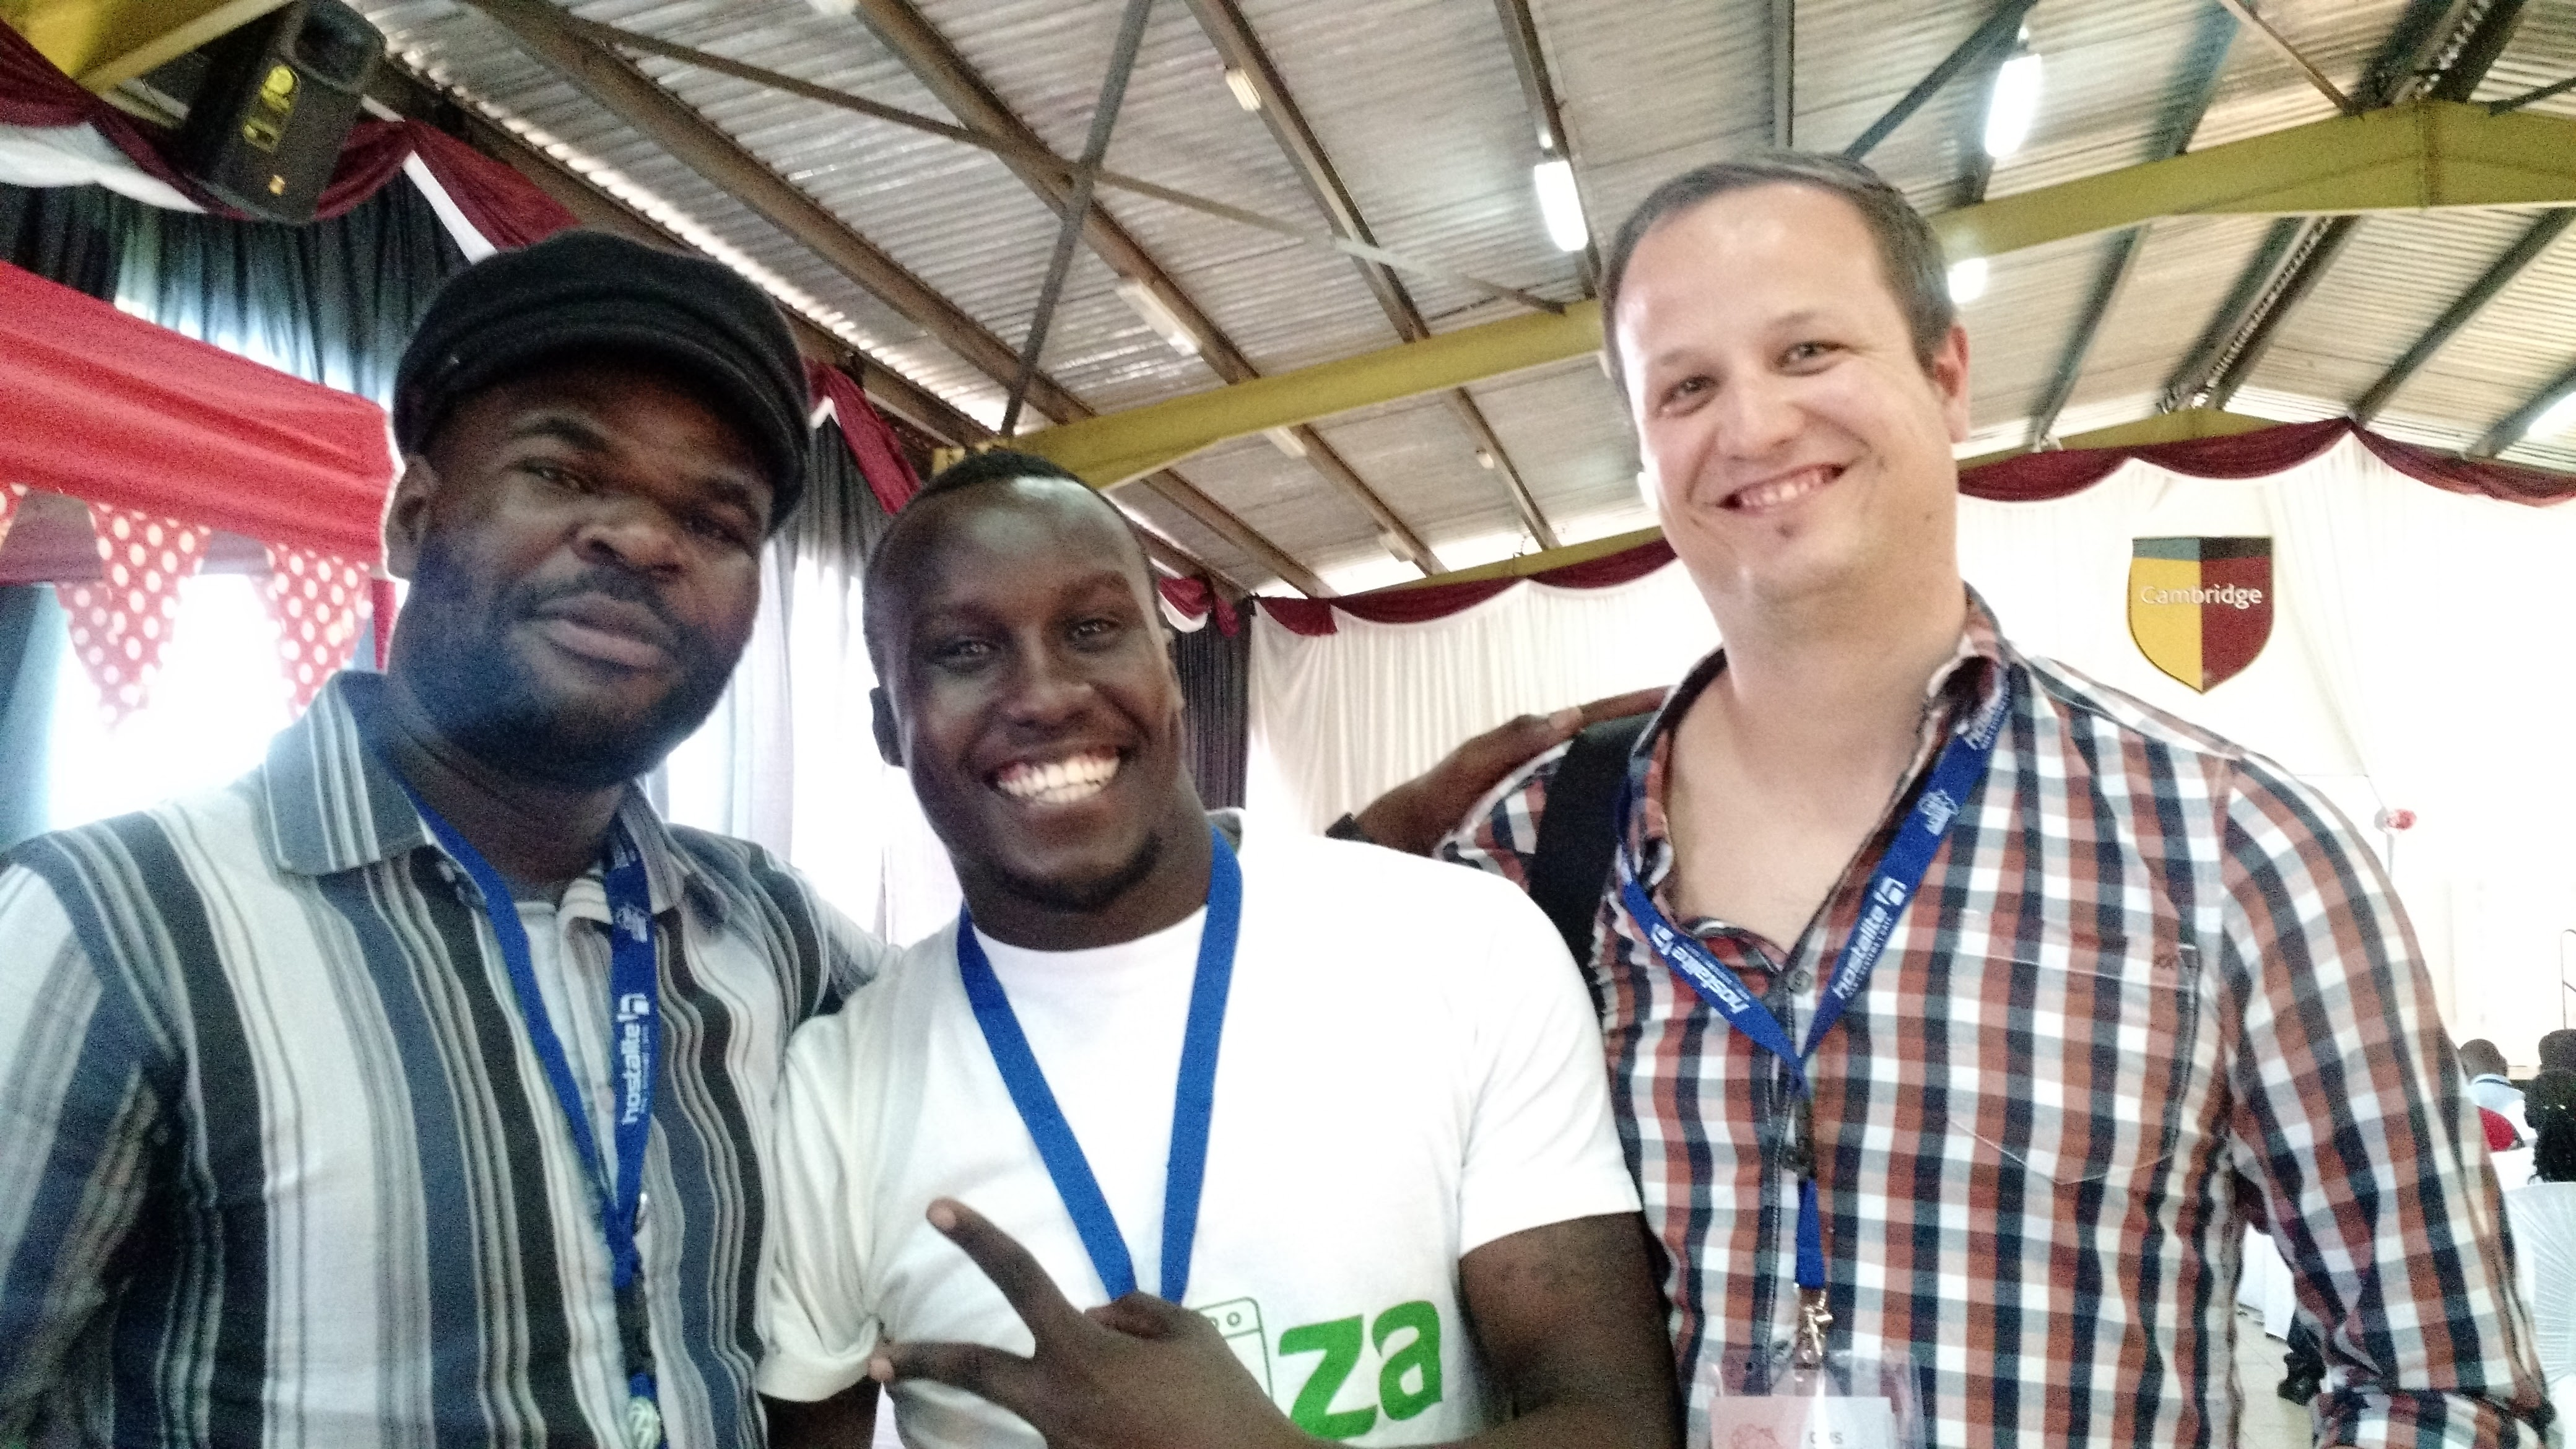 From left: Oduor Jagero (CMS Africa Summit co-organizer), entrepreneur Solomon Kitumba, and Job.